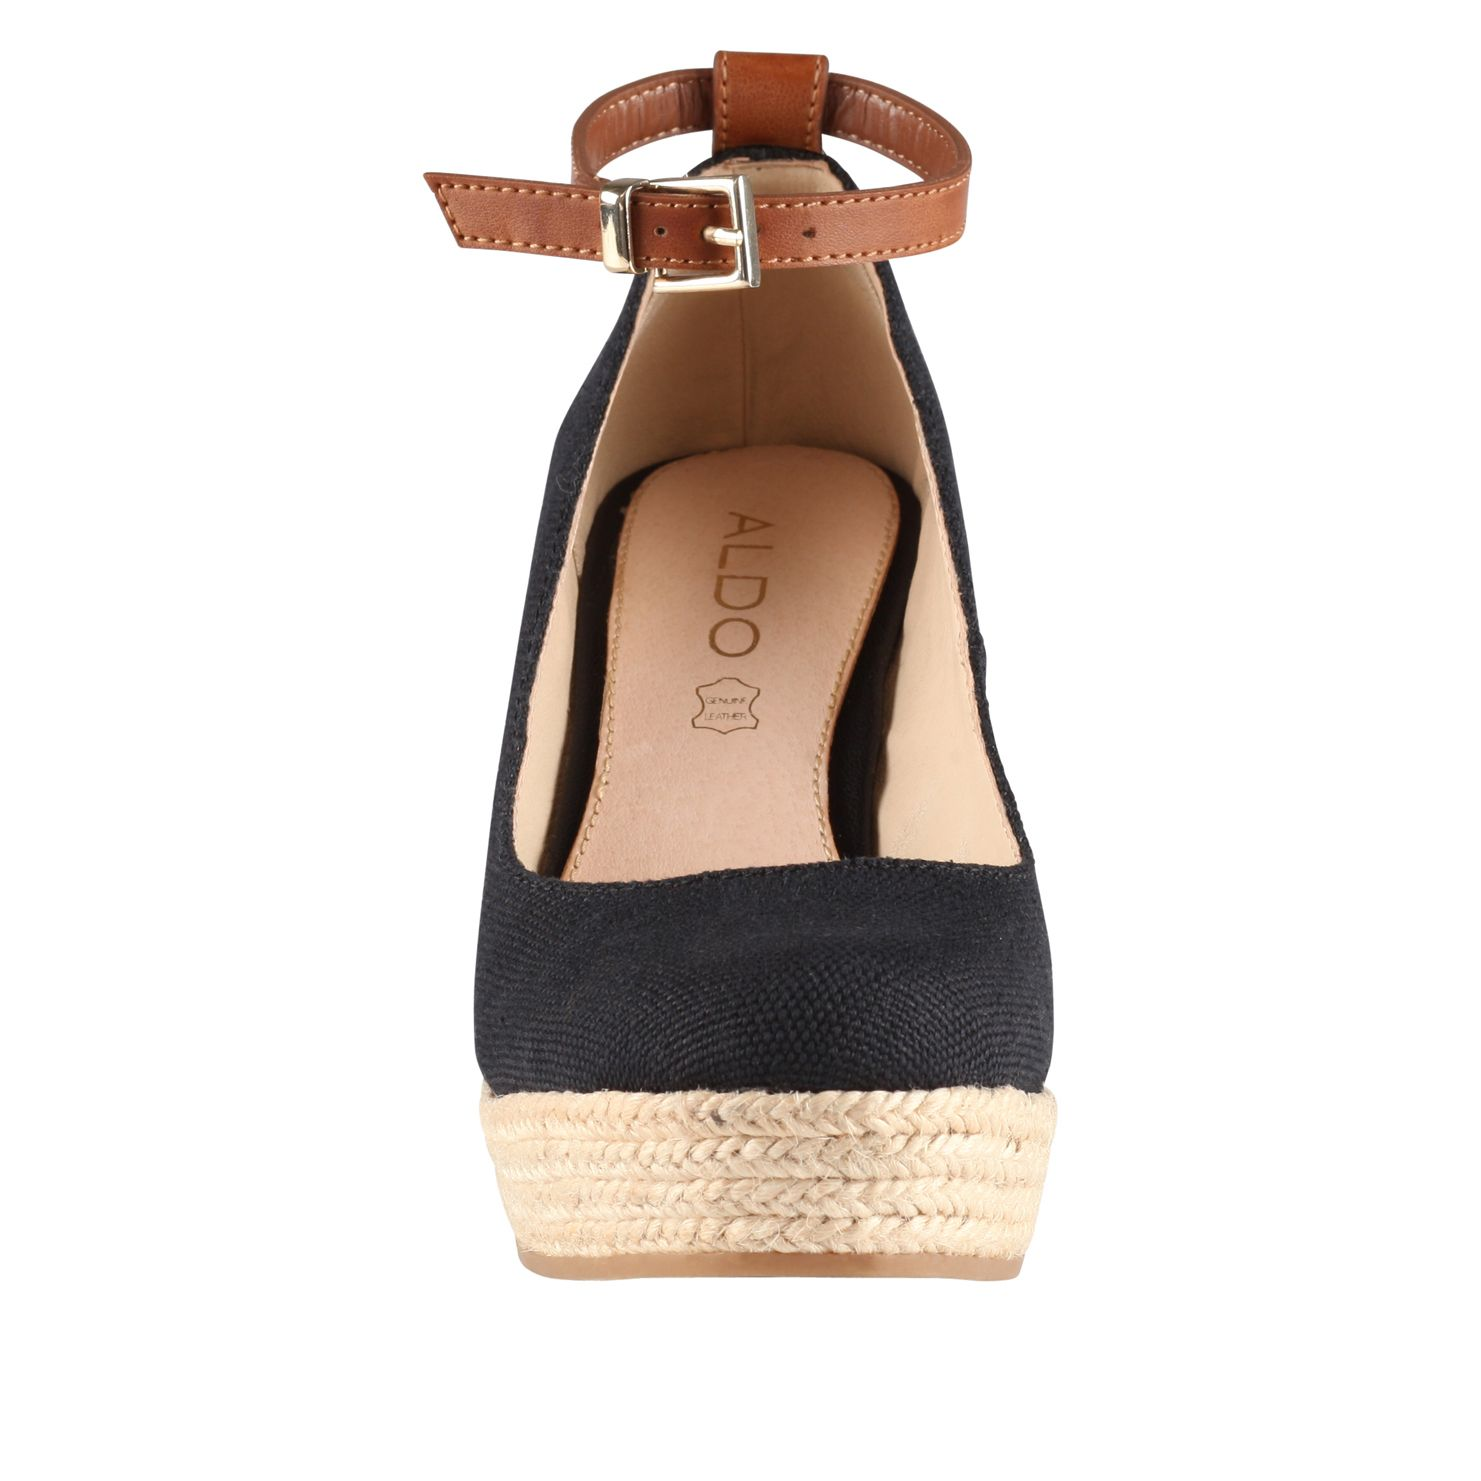 Grenama almond toe wedge espadrille court shoes